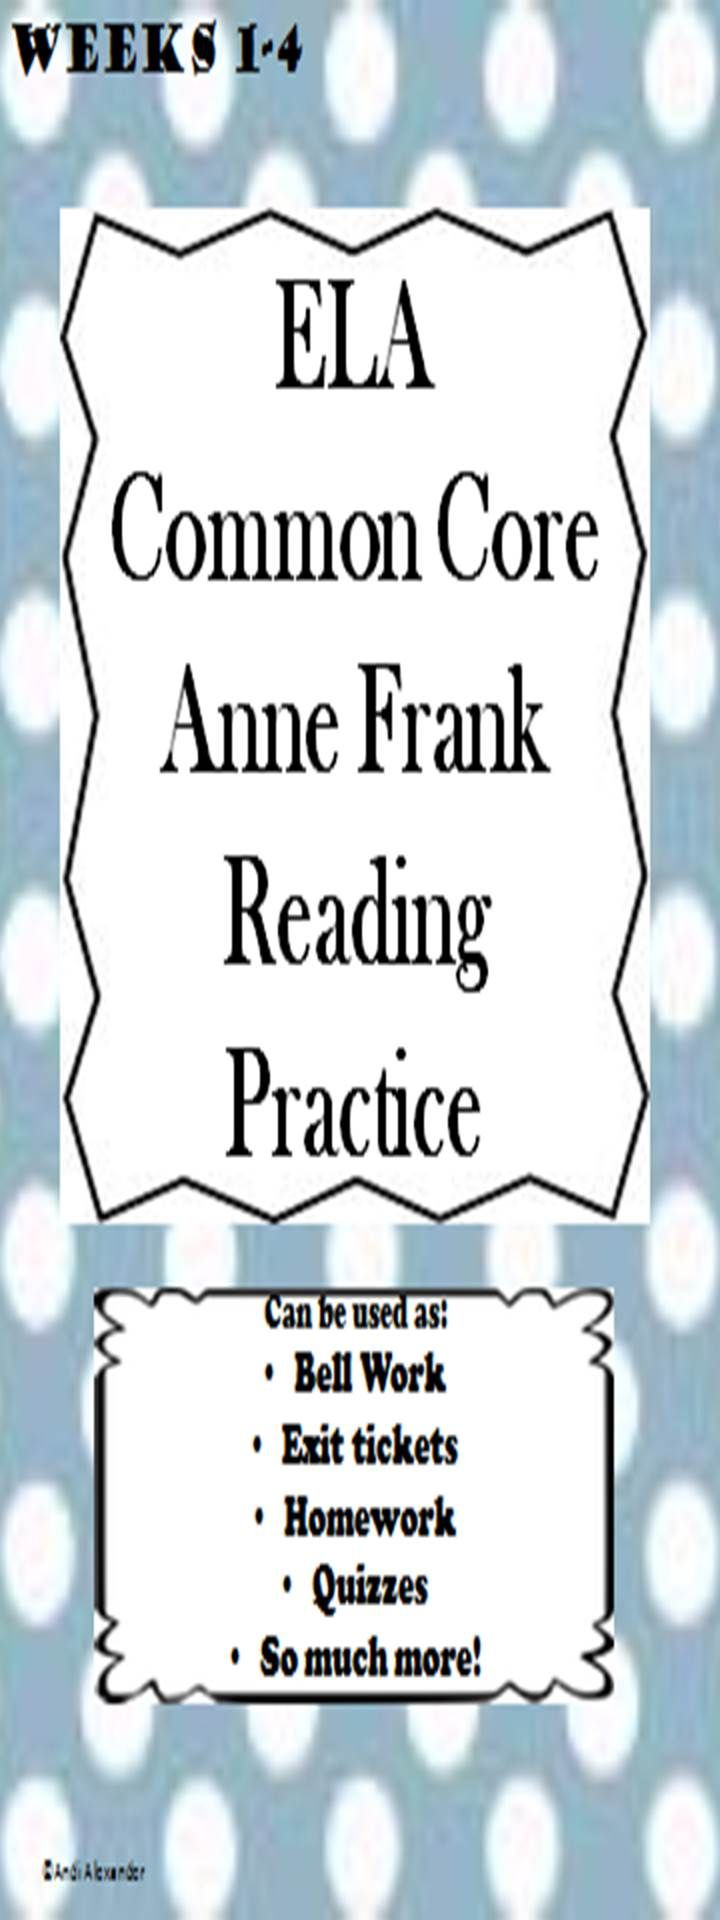 Anne Frank Daily Common Core Reading Practice. This includes 4 weeks of Reading Practice that can be used for bell work, homework, daily practice, quizzes, and more!